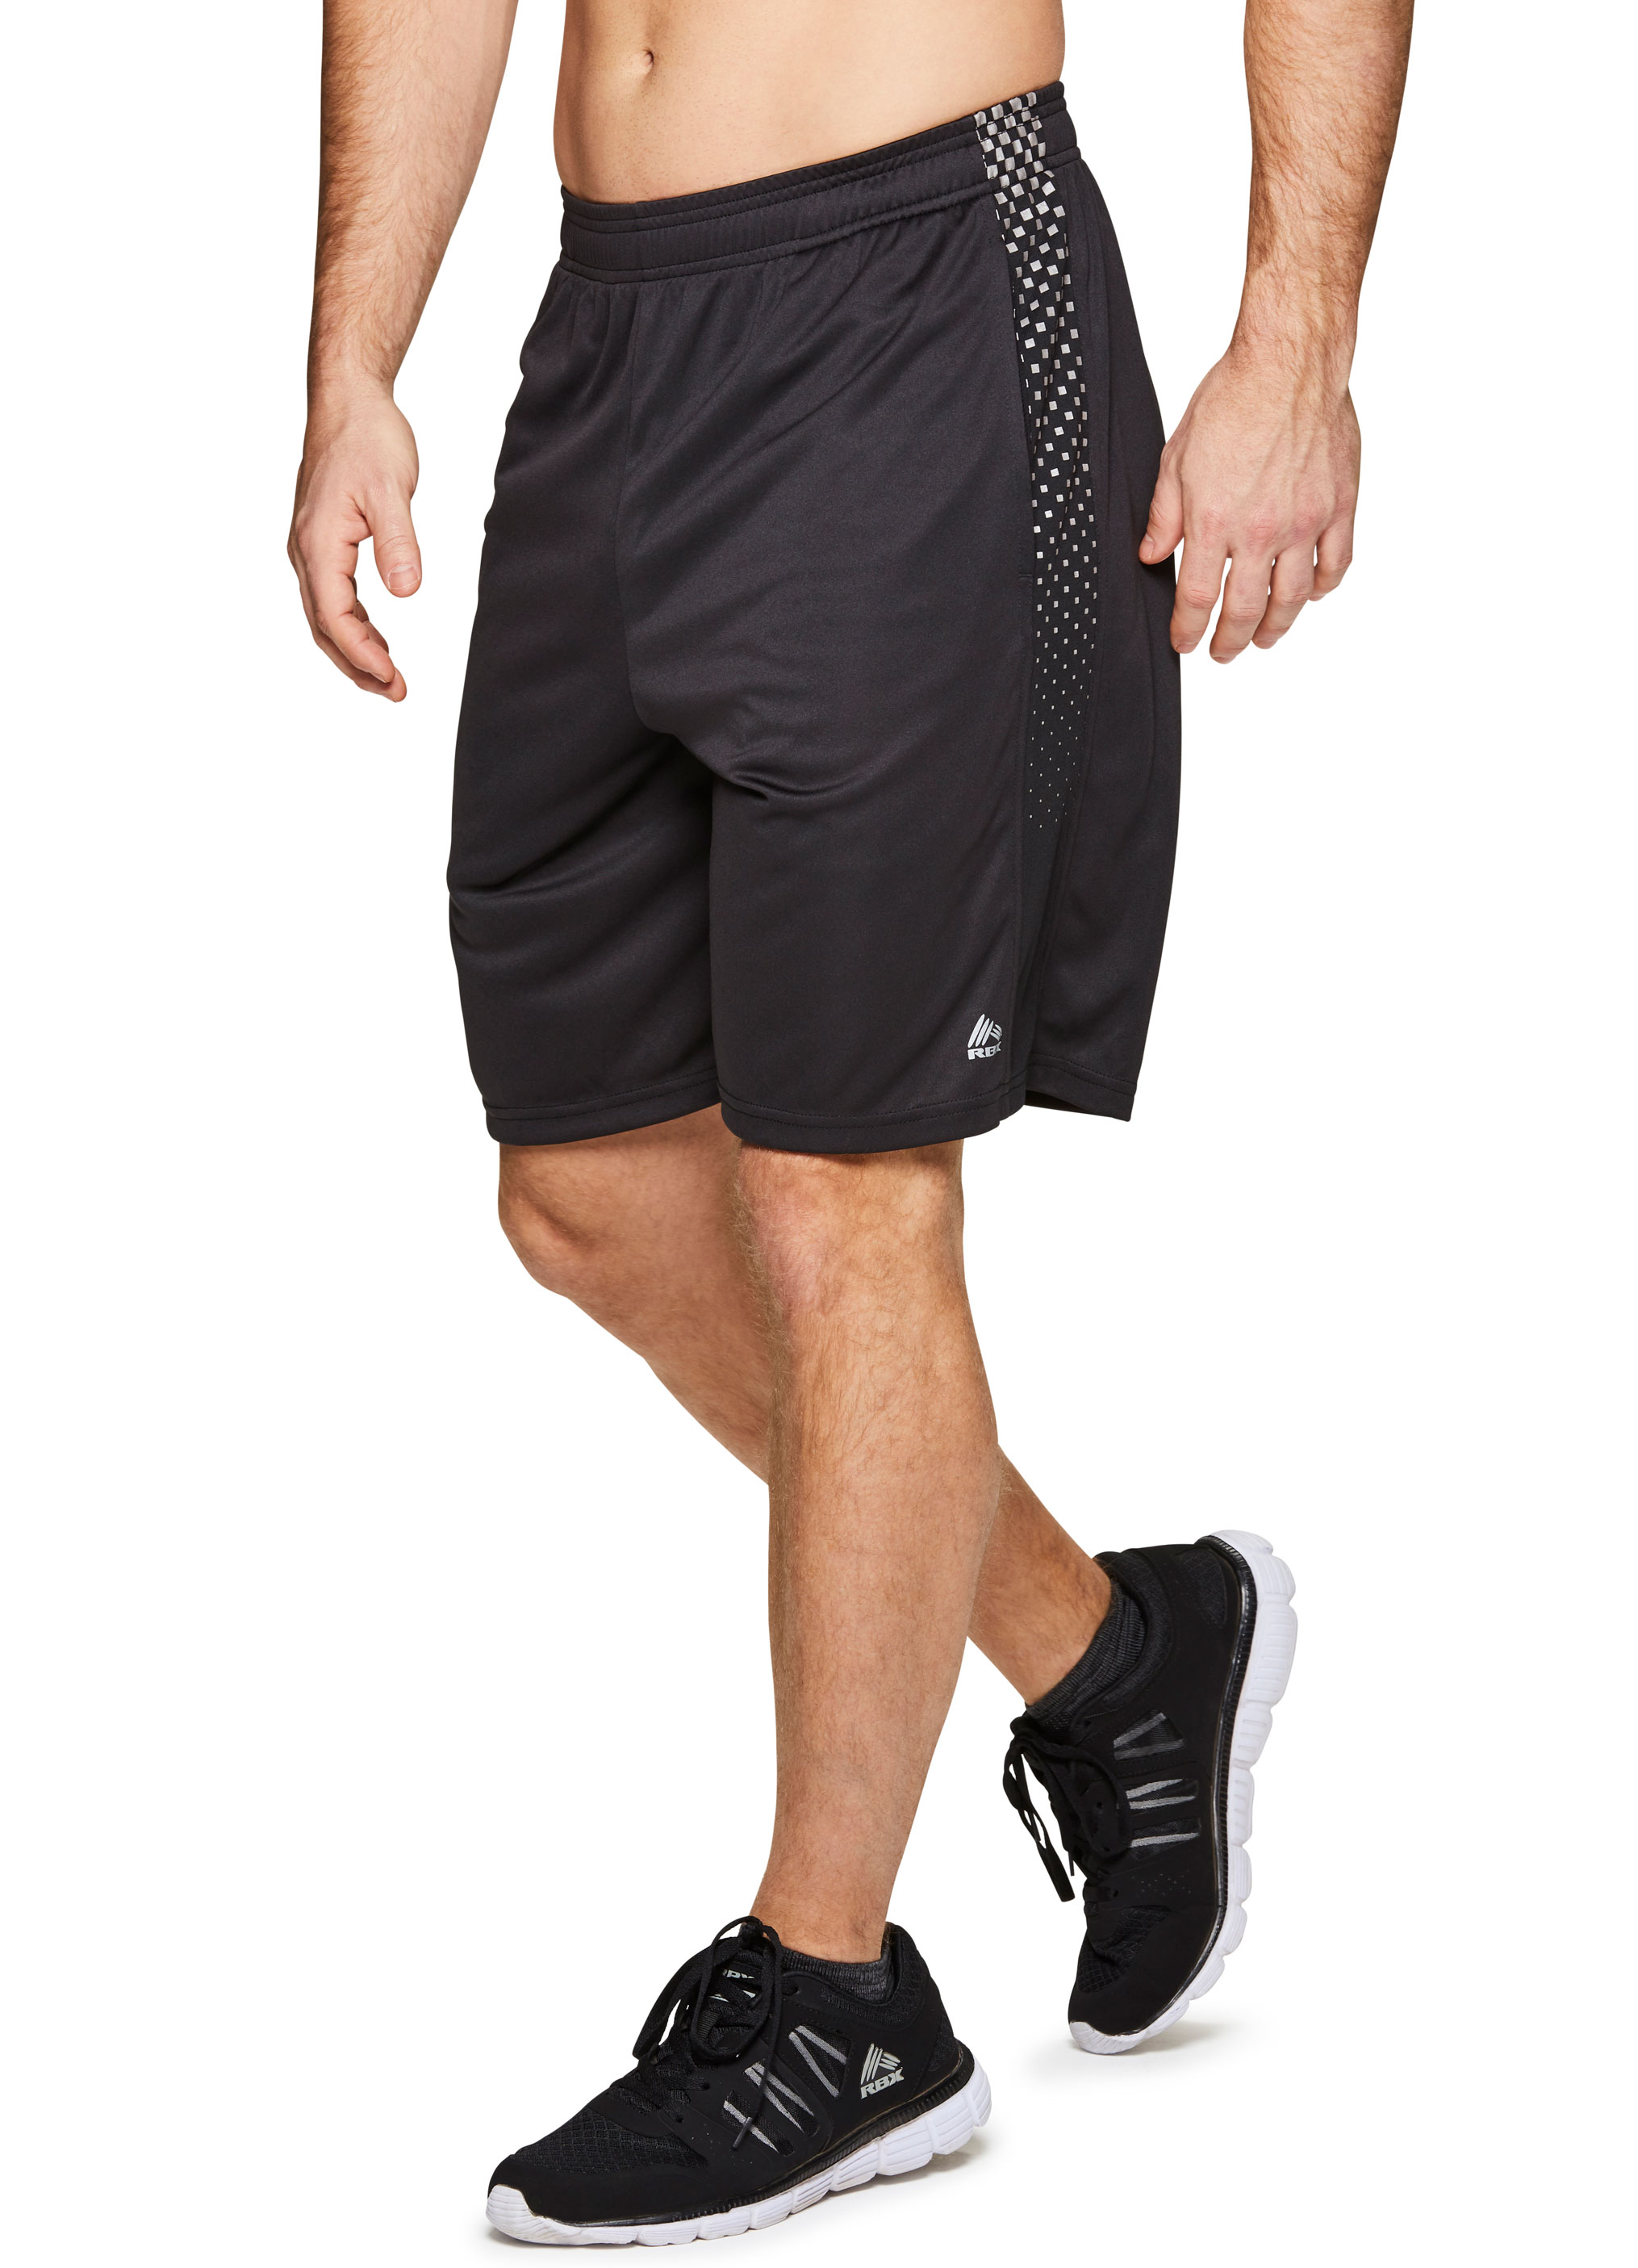 RBX Active Men's 9 in Workout Running Gym Shorts with Pockets